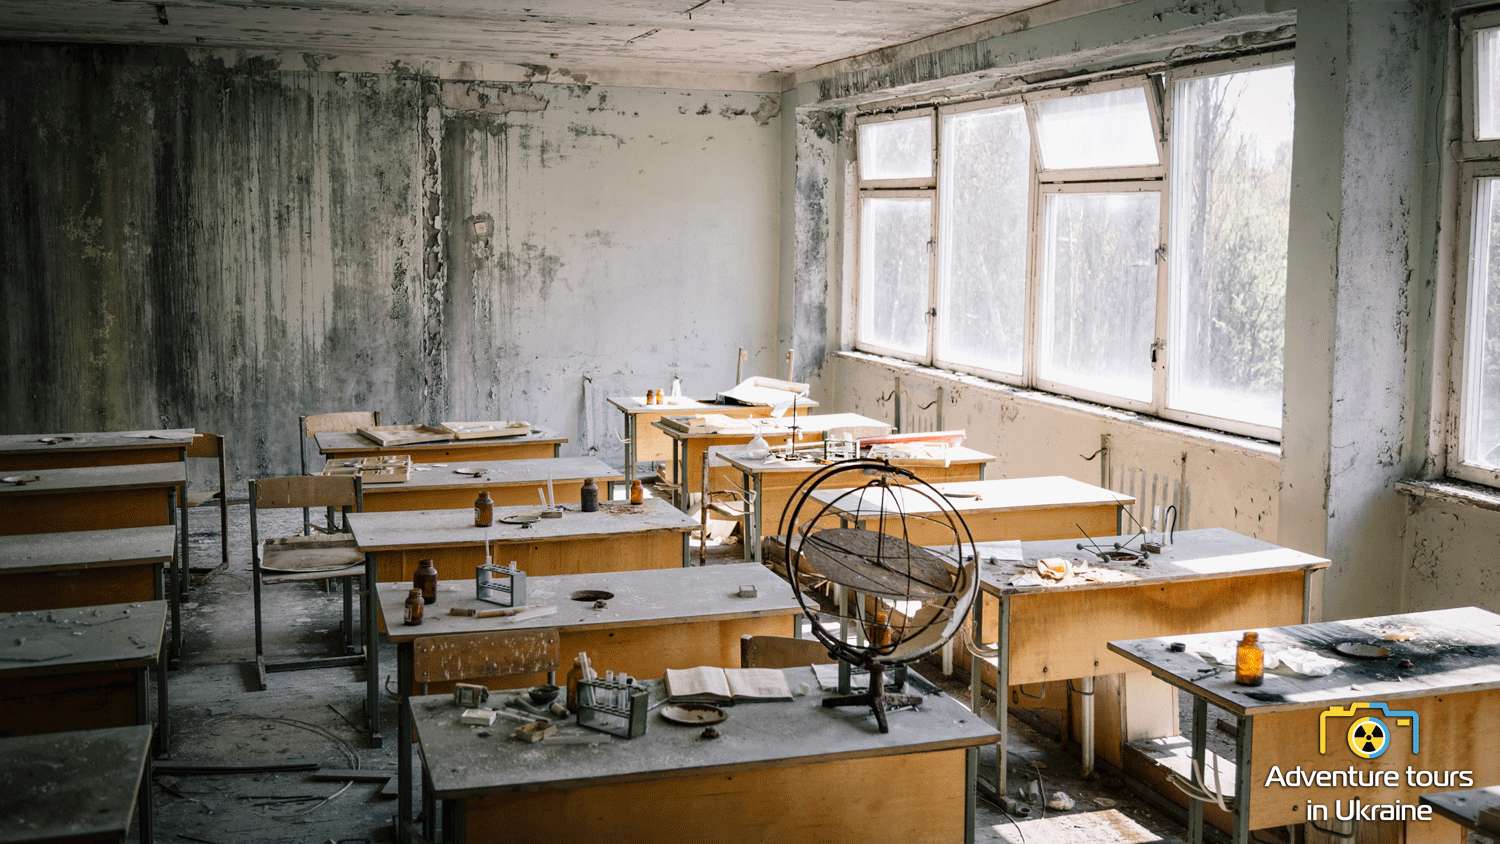 Chernobyl zone tour - abandoned school in Pripyat